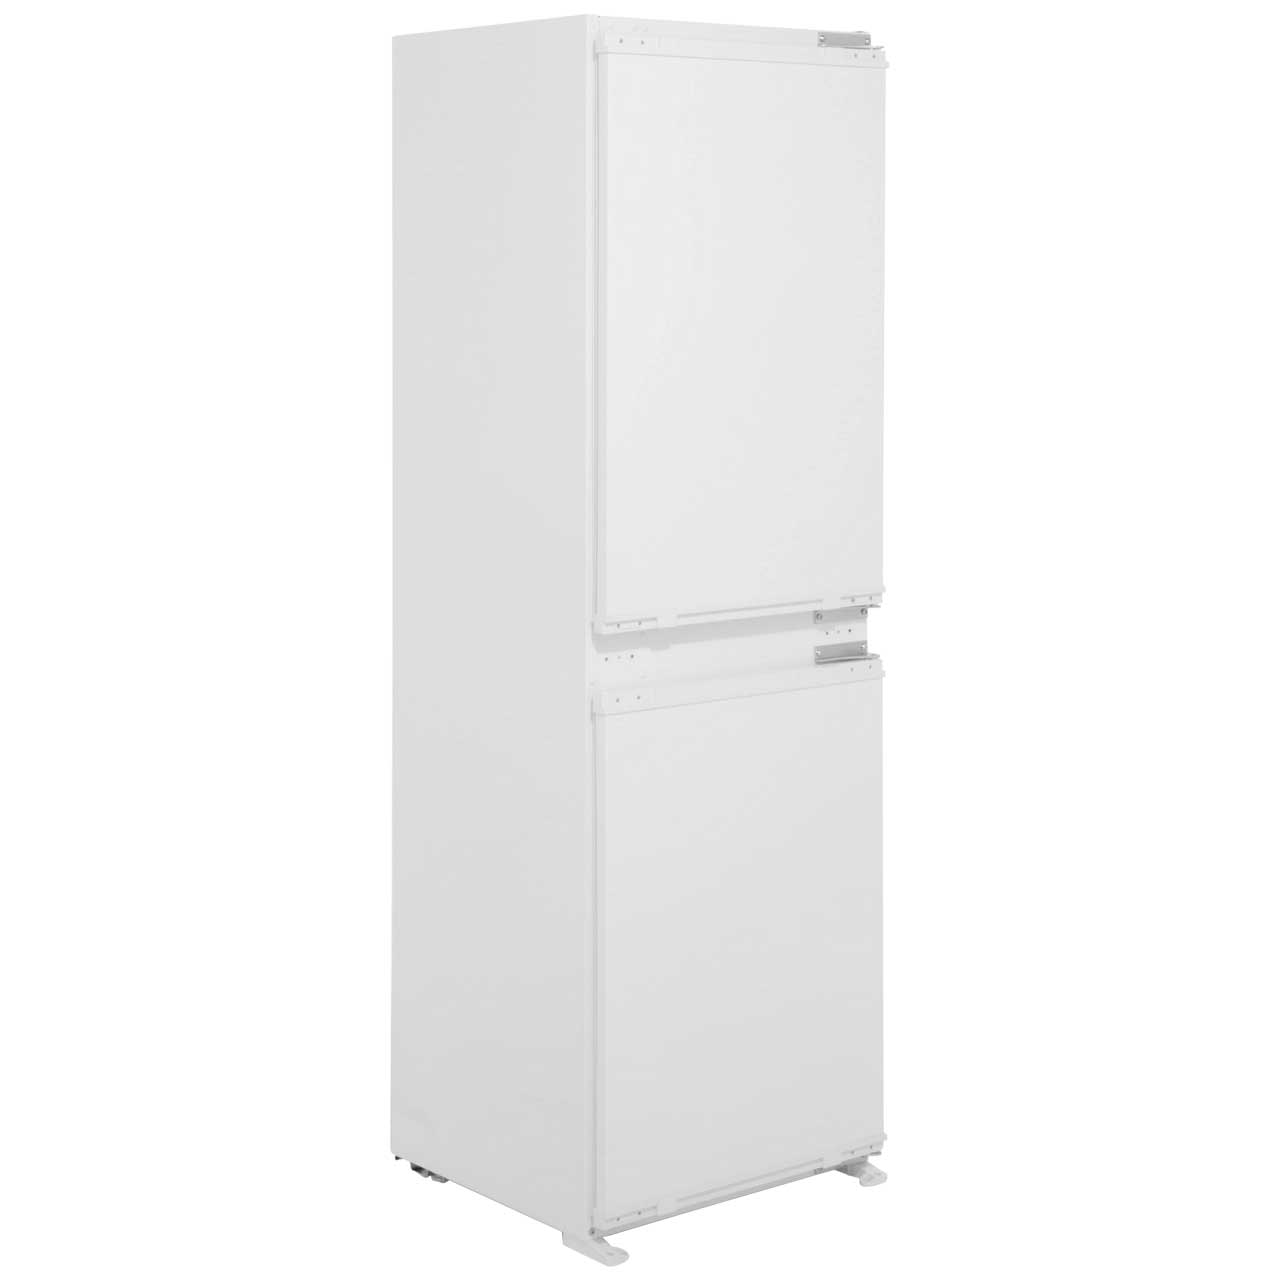 Beko BC502 Integrated Fridge Freezer in White